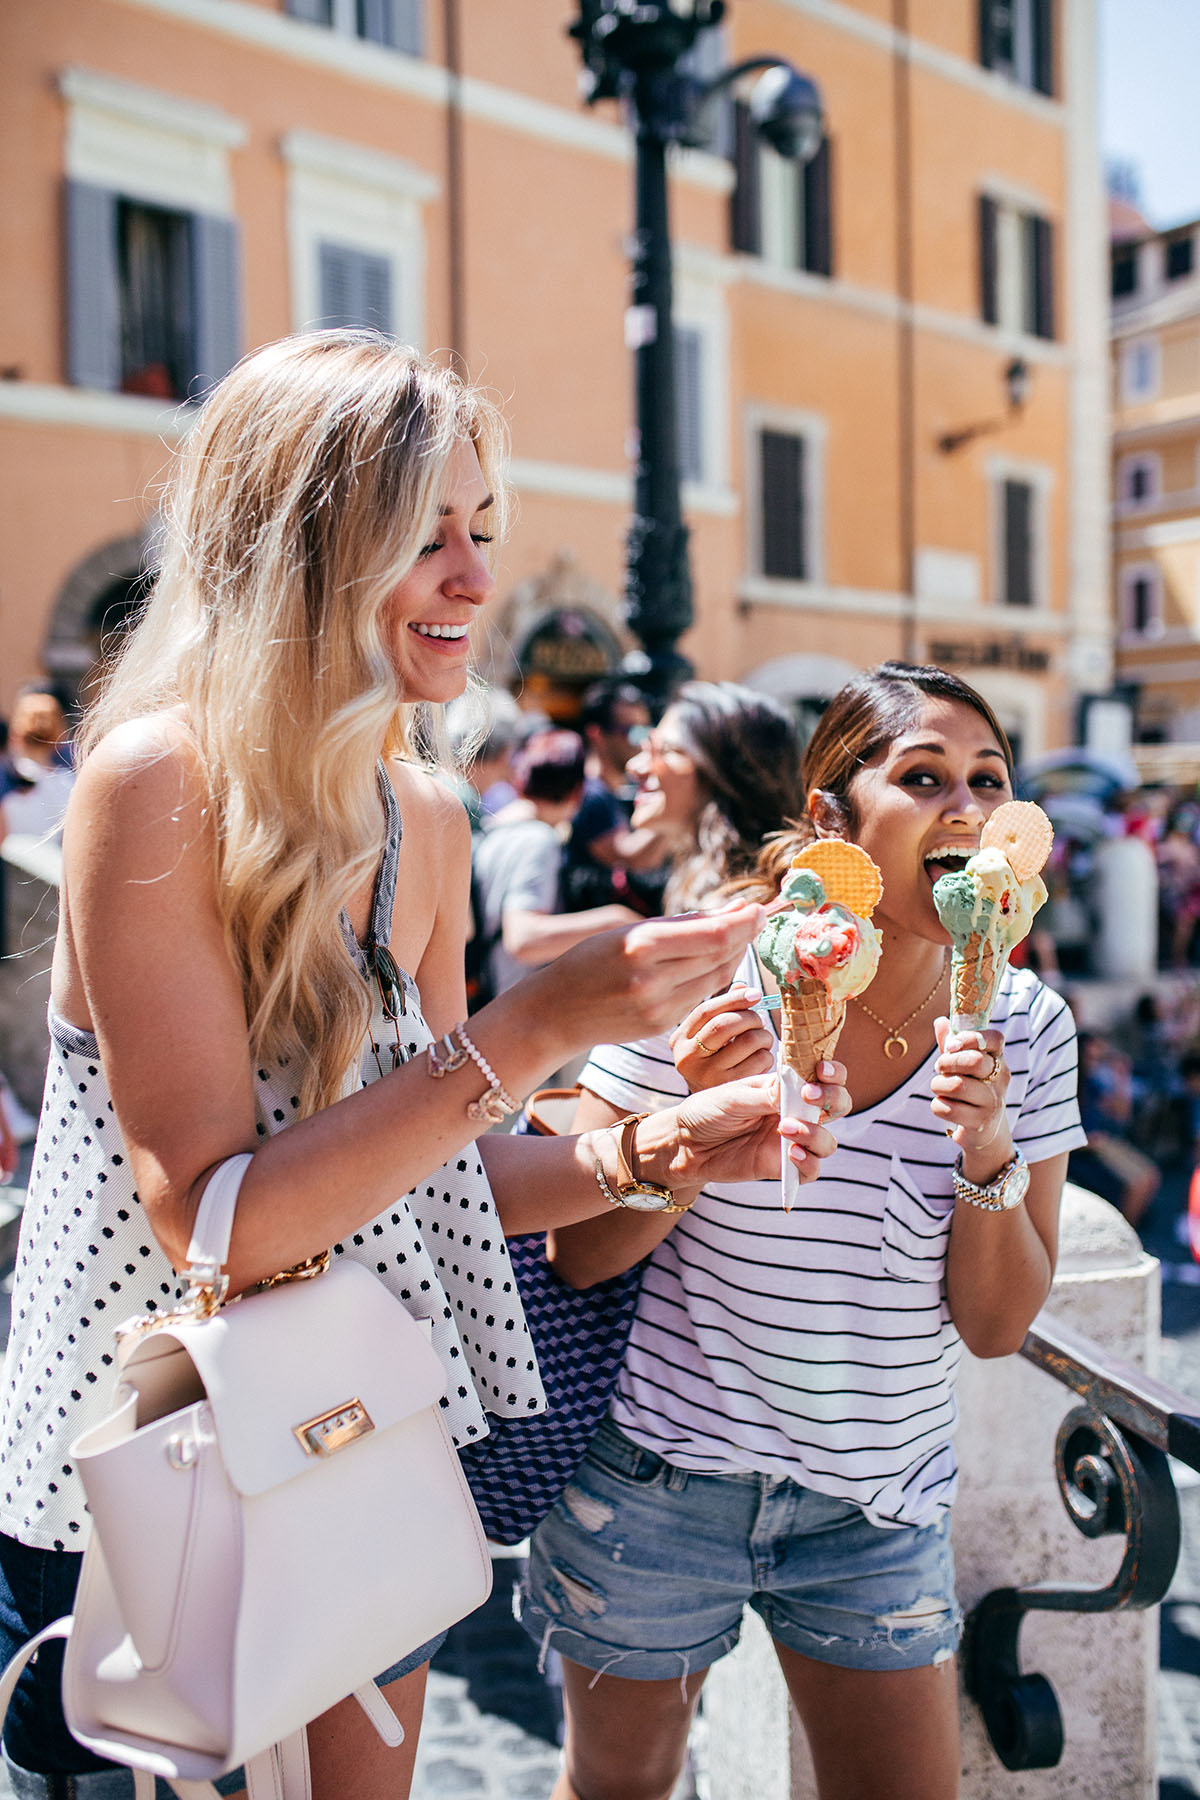 How To Spend 24 Hours in Rome | Rome, Italy Travel Guide + Tips